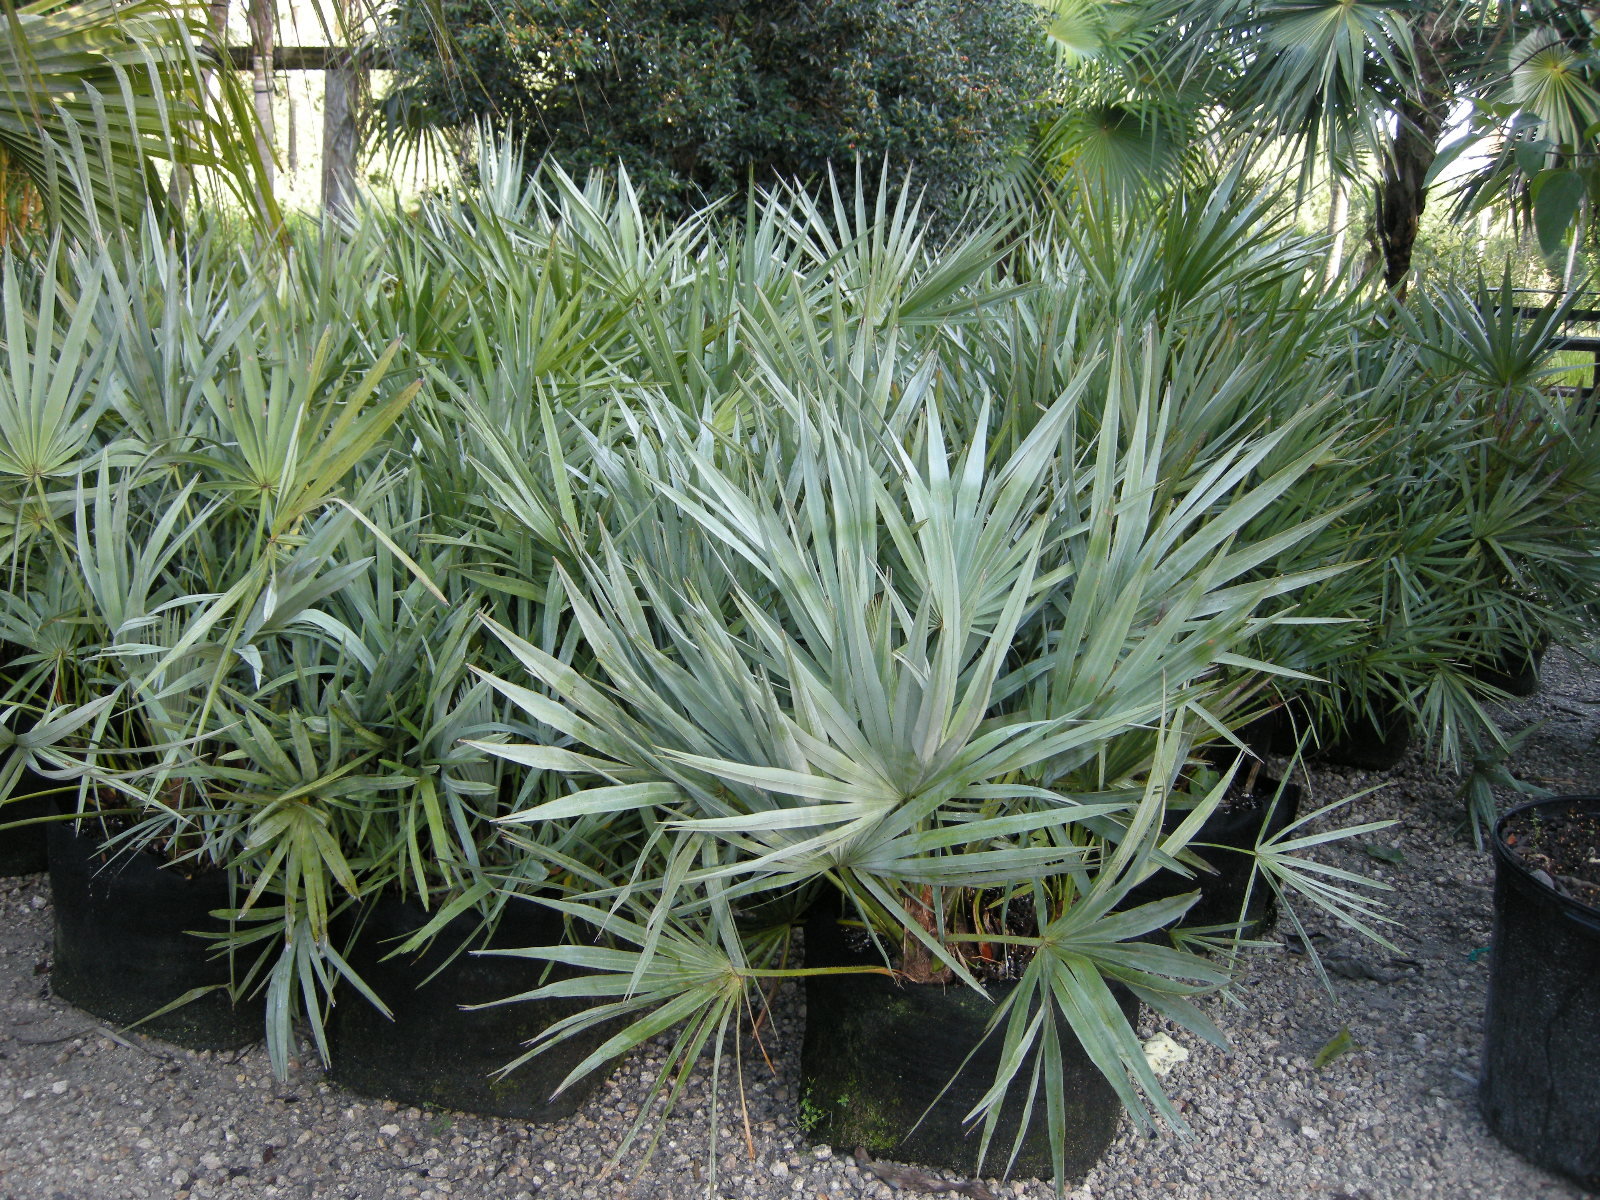 Jax Palm Trees has extensive Inventory including Palmettos in Jacksonville, Florida.